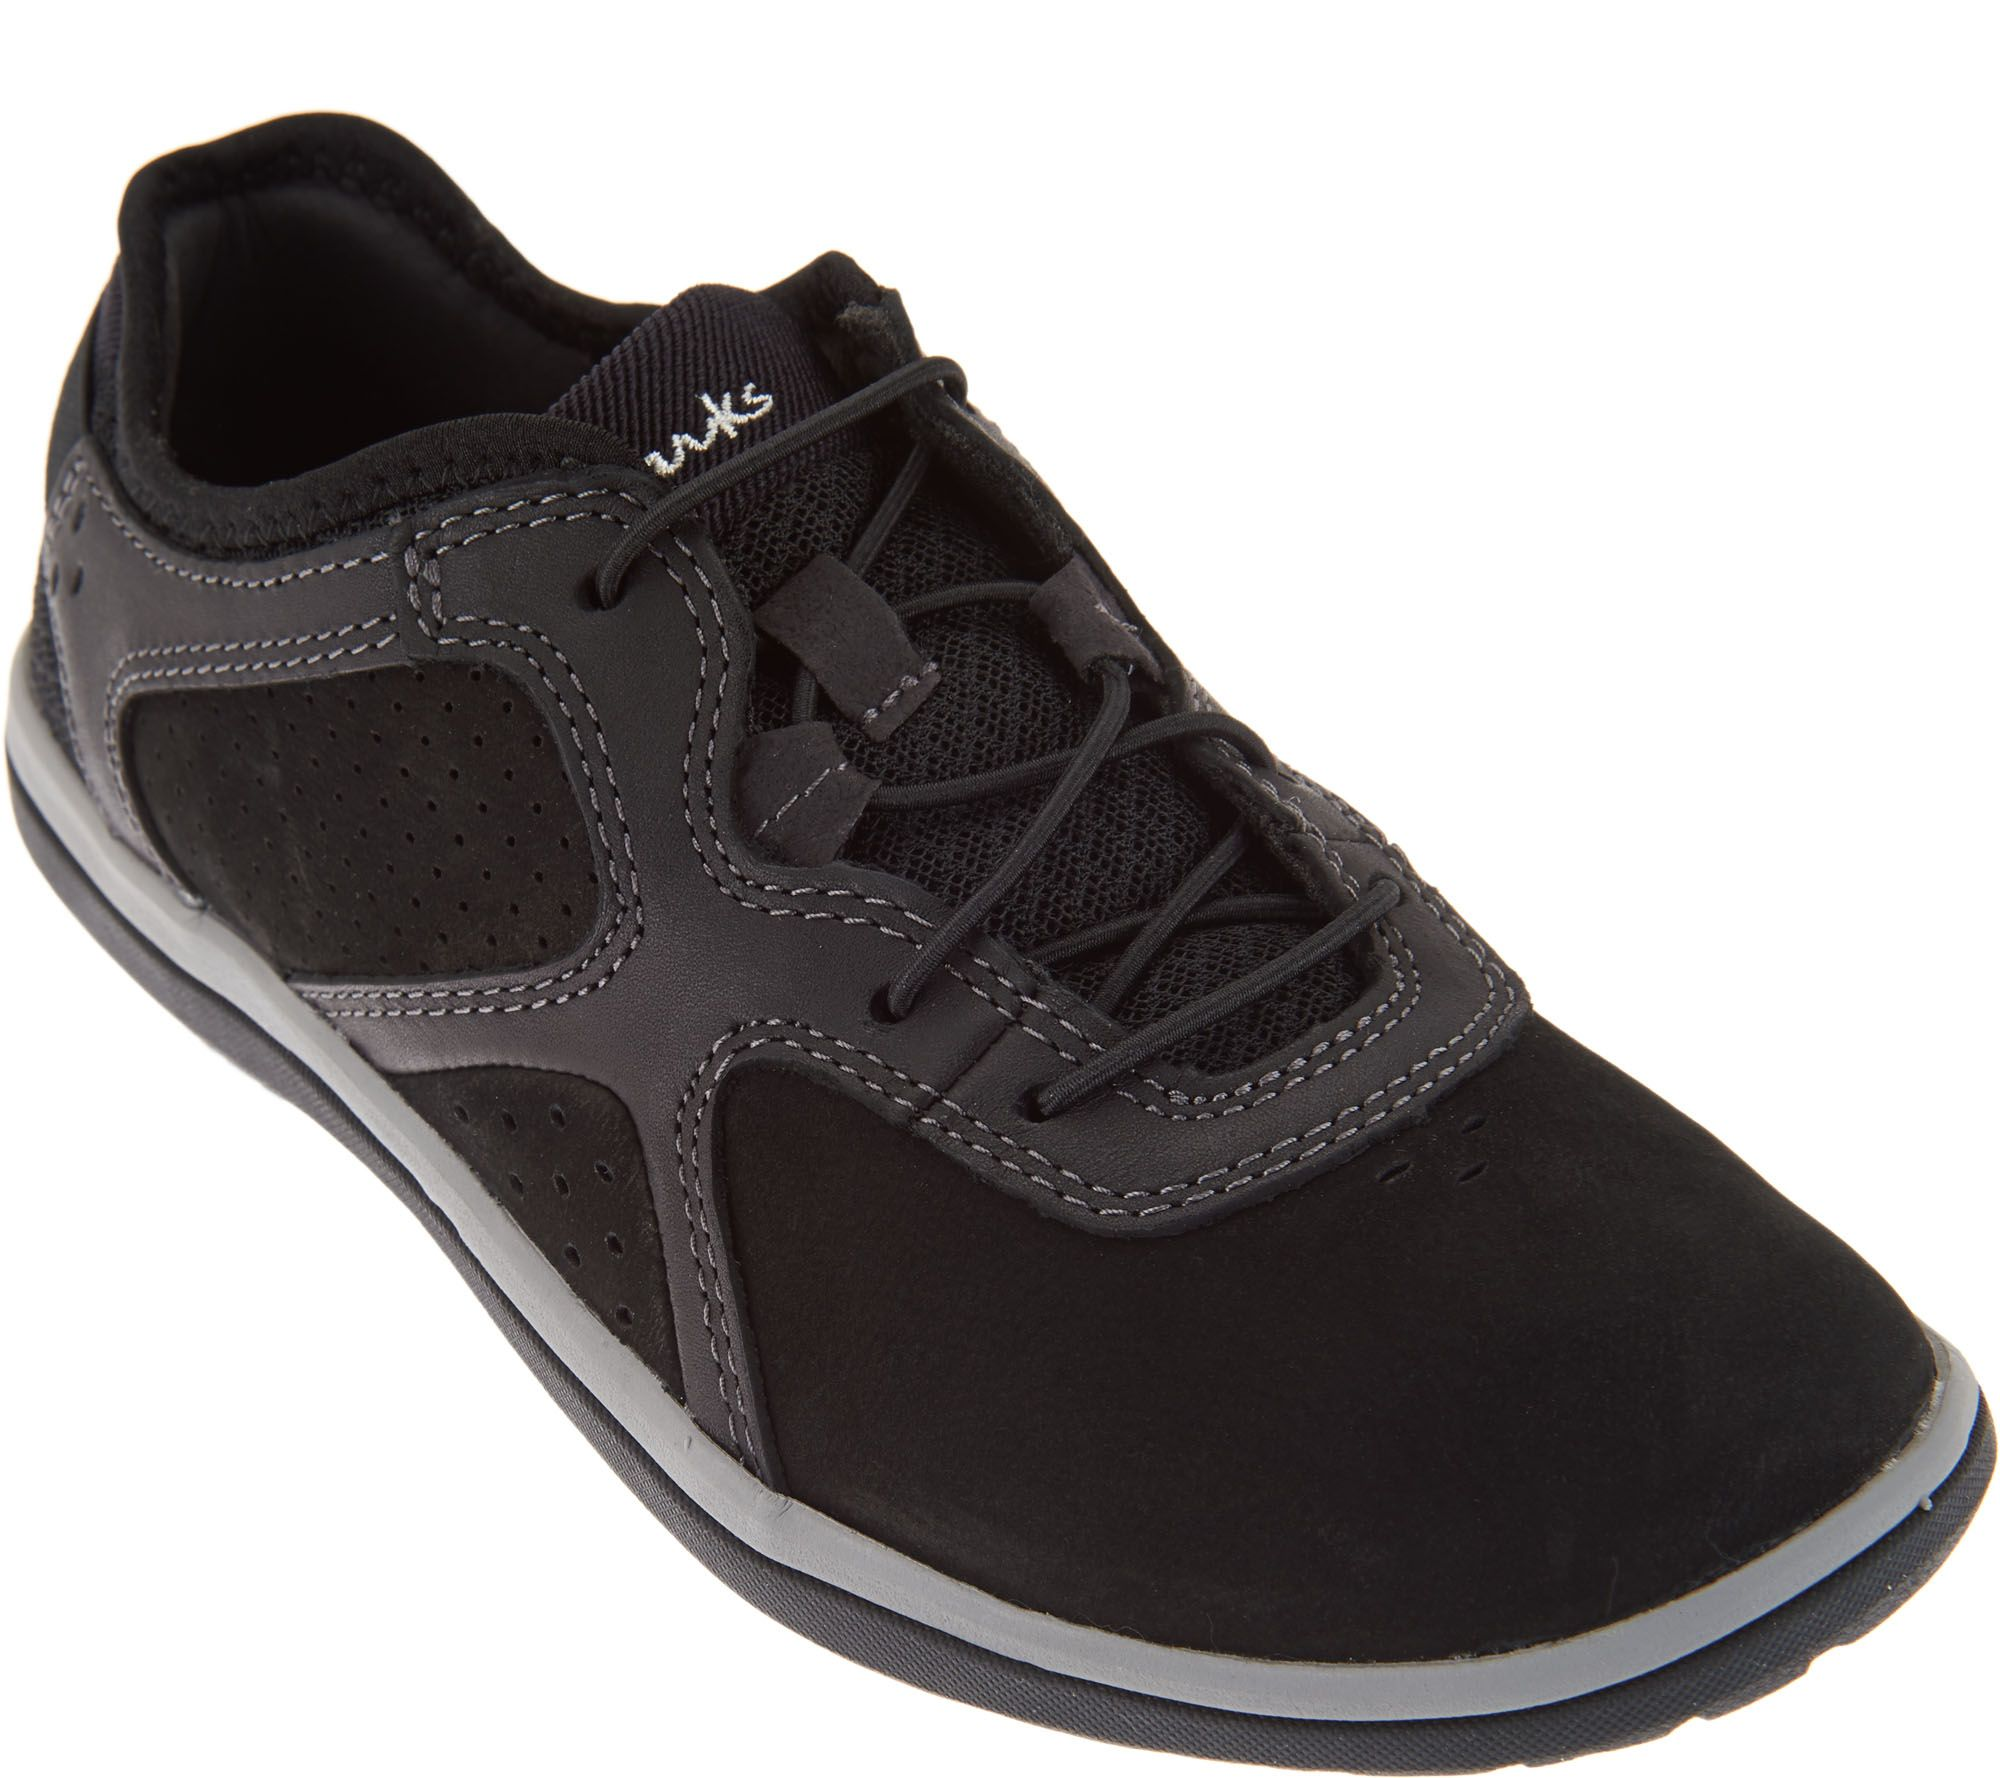 quot as is quot clarks leather bungee slip on sneakers lace